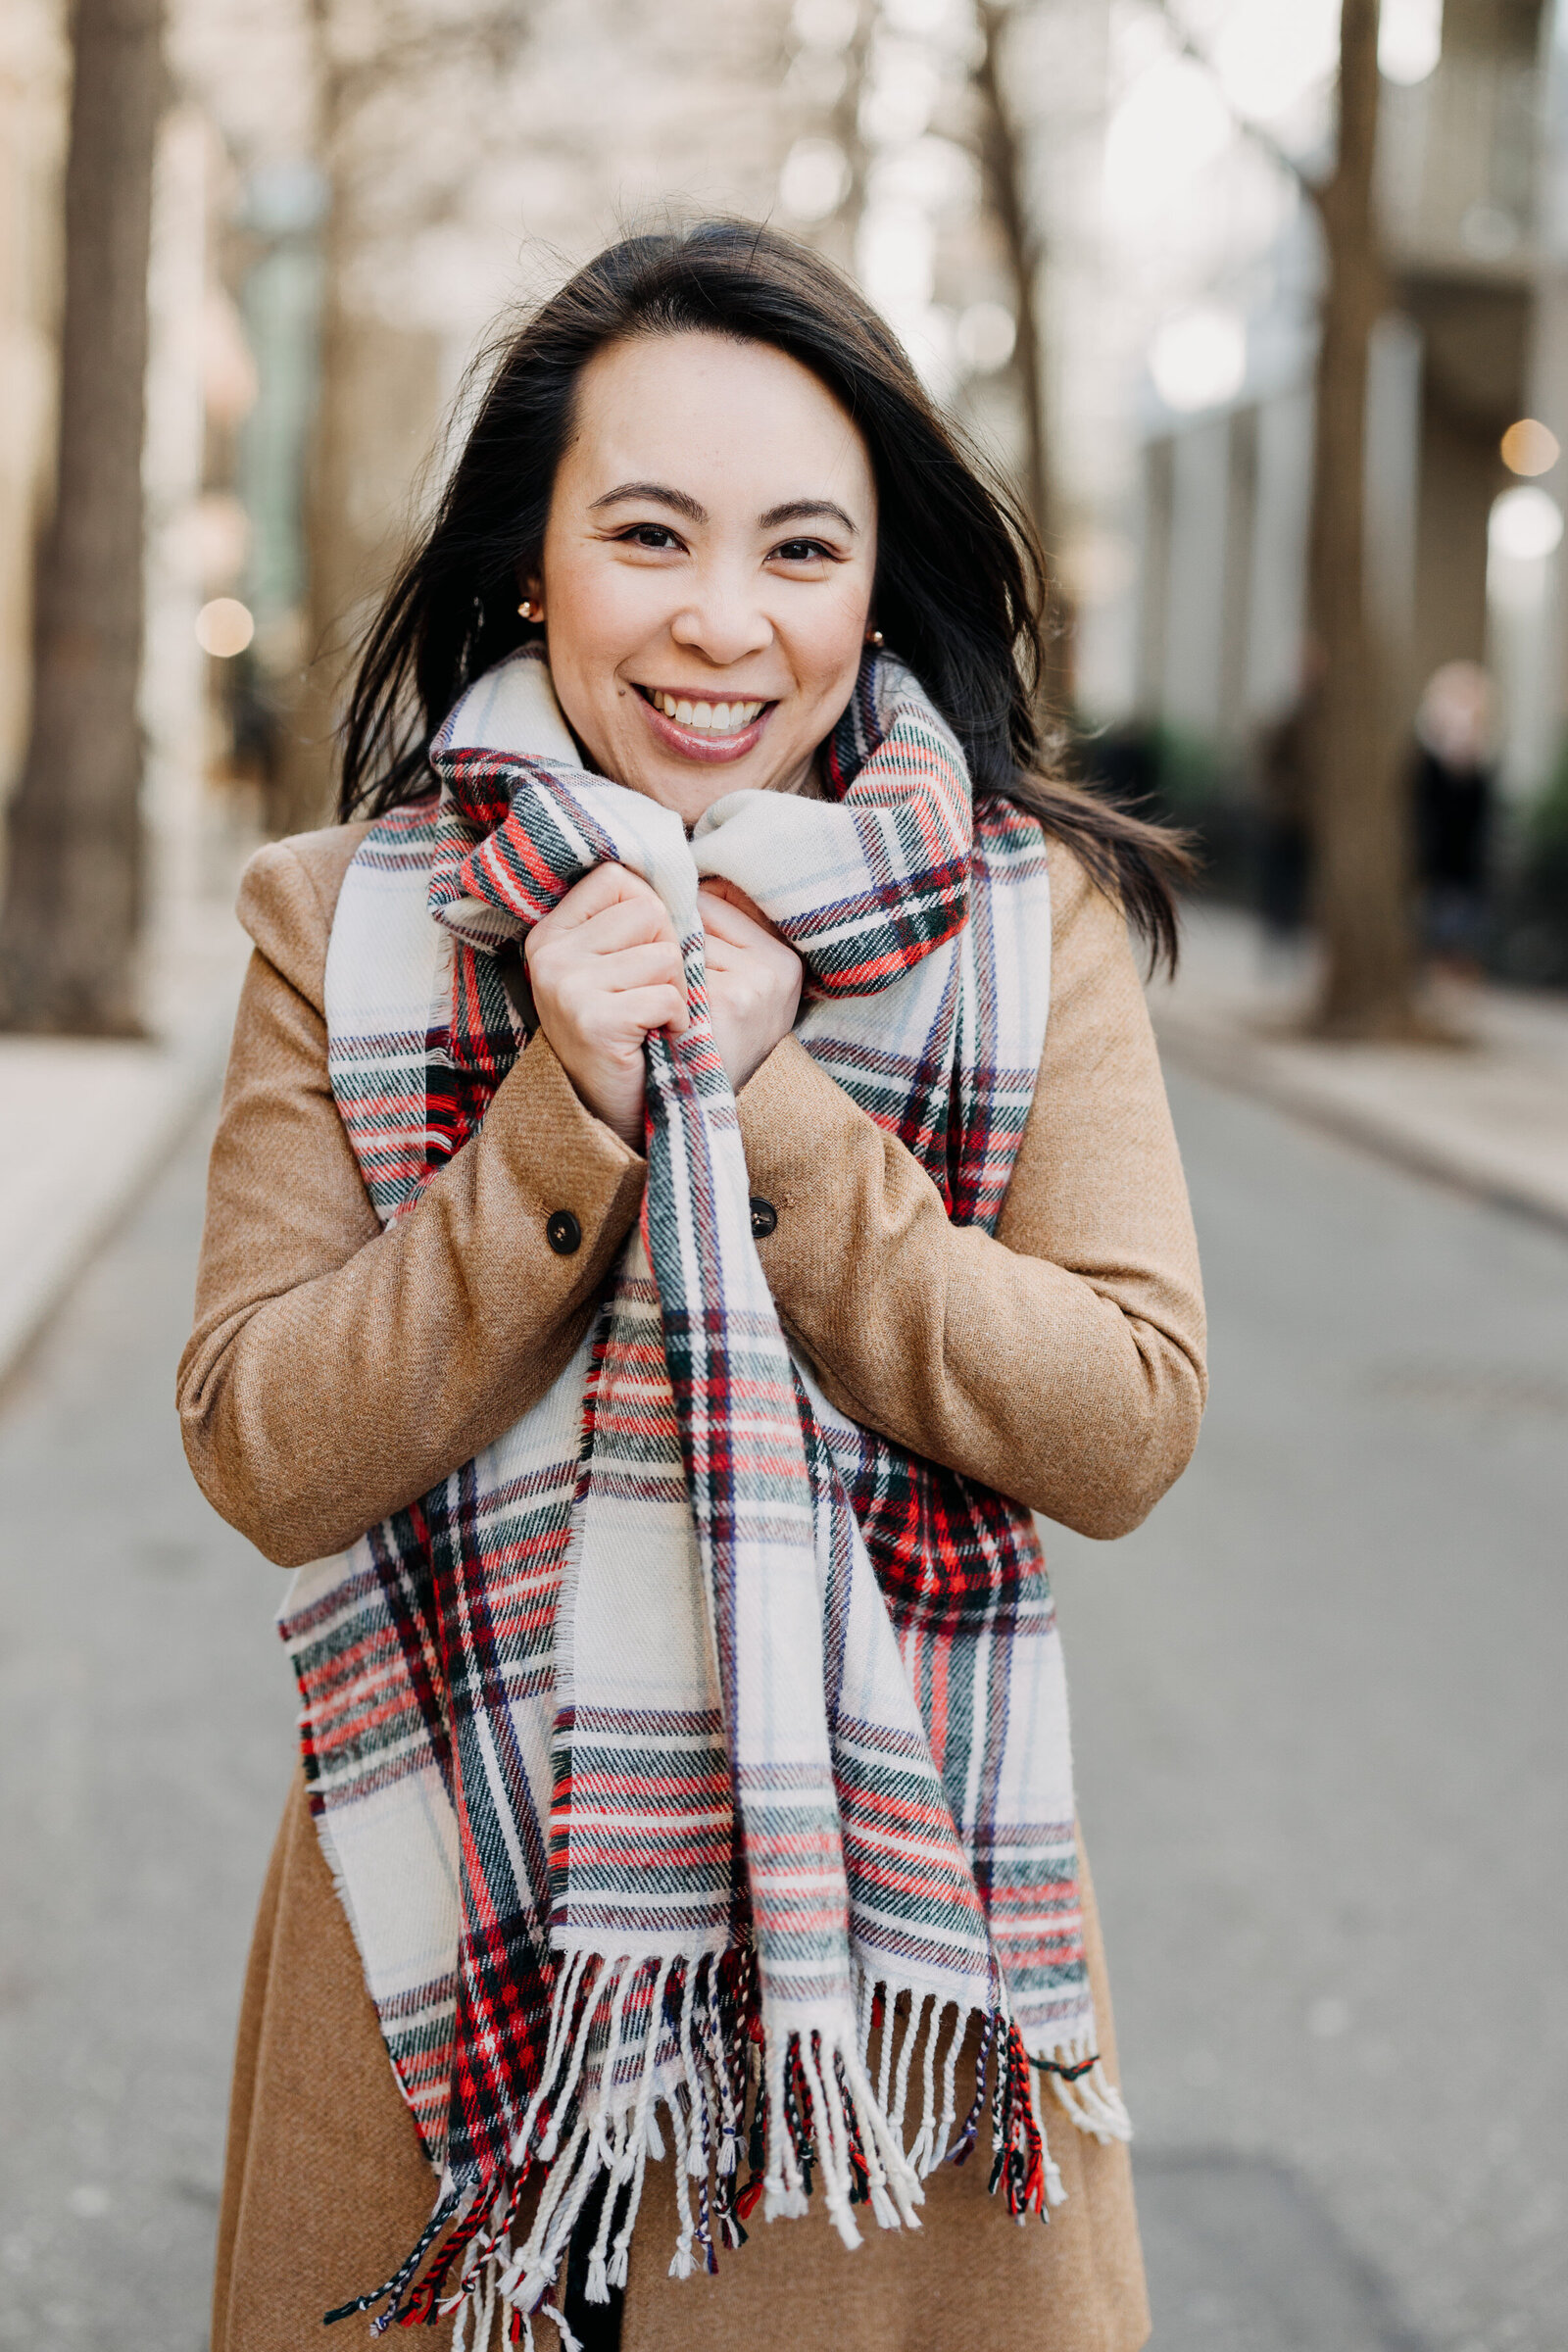 asian woman with scarf in the city